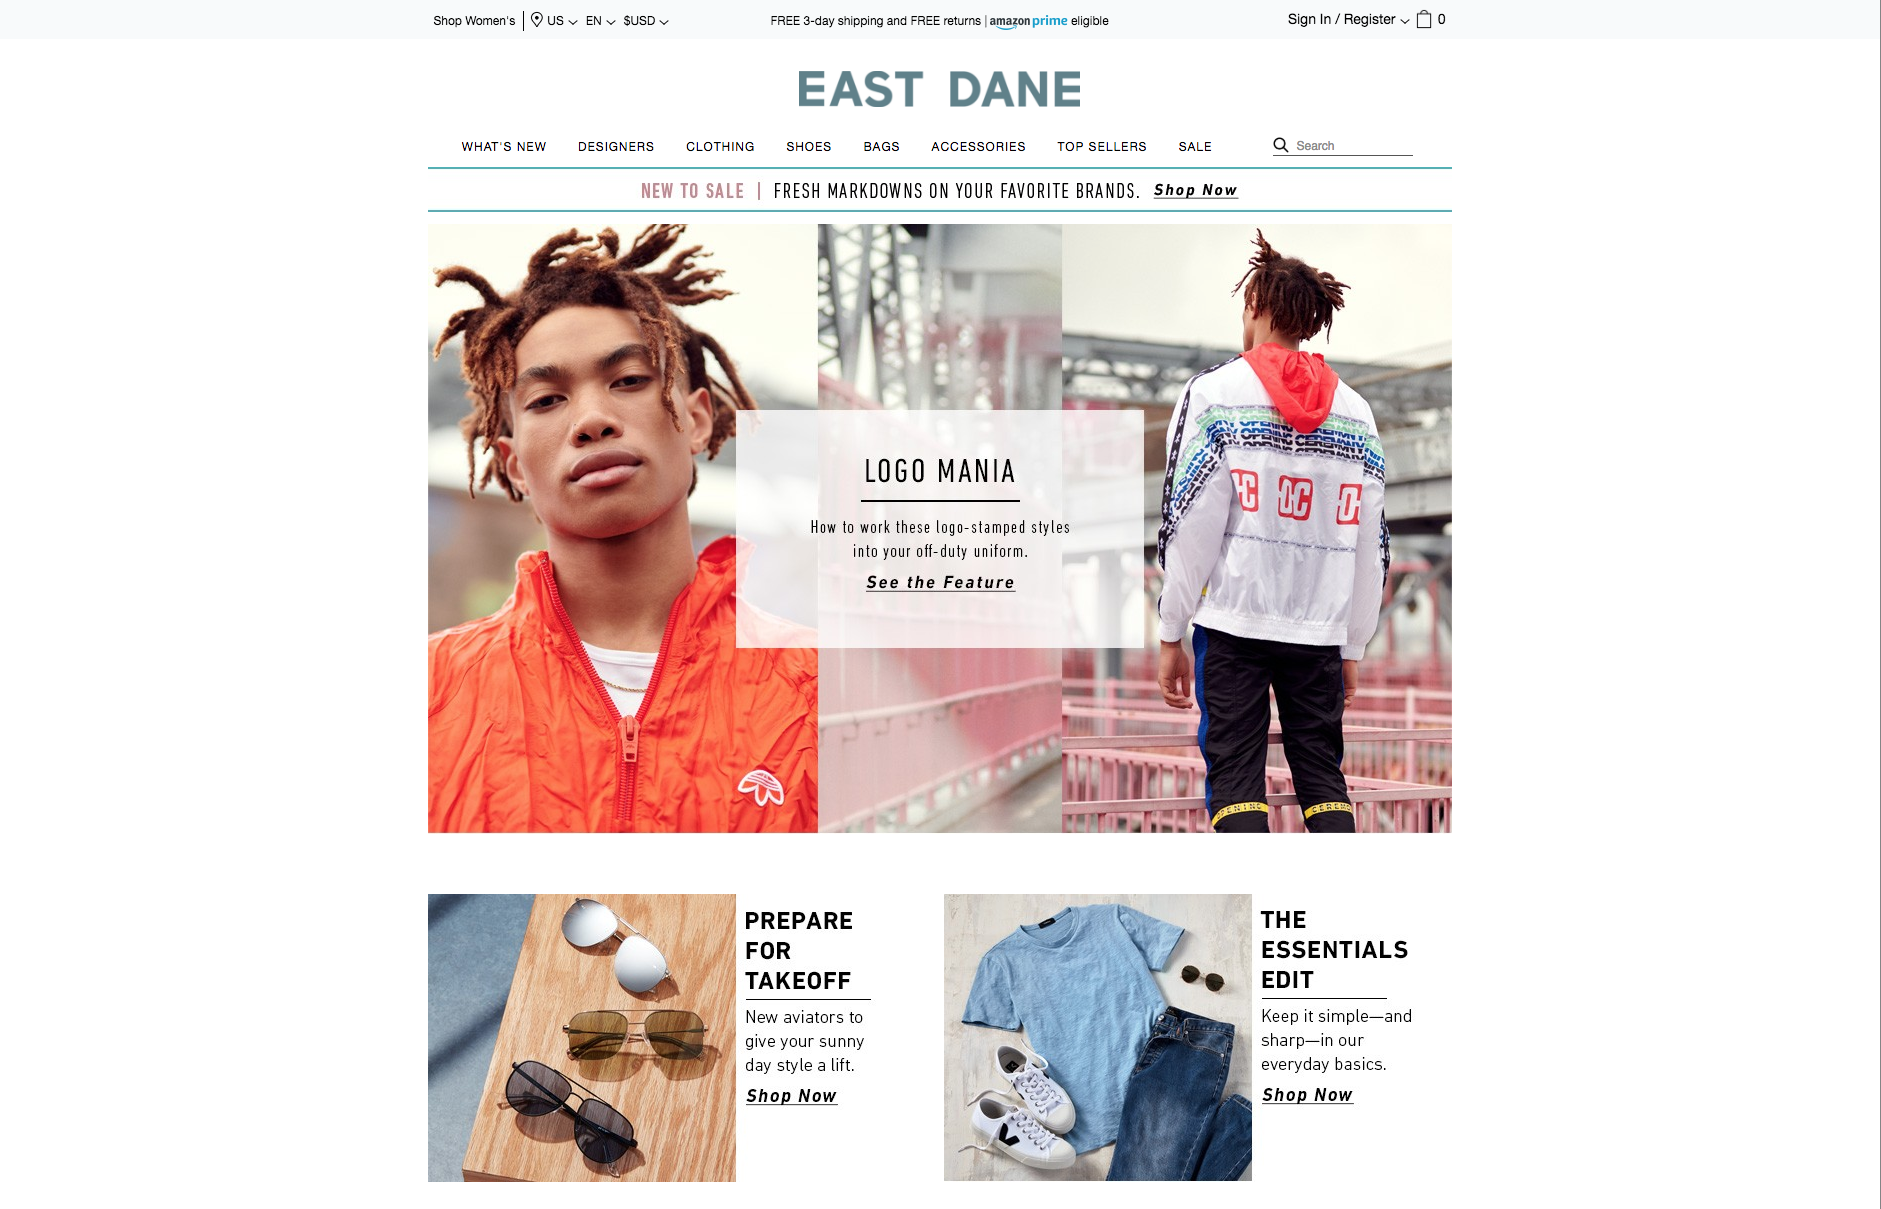 The East Dane website.